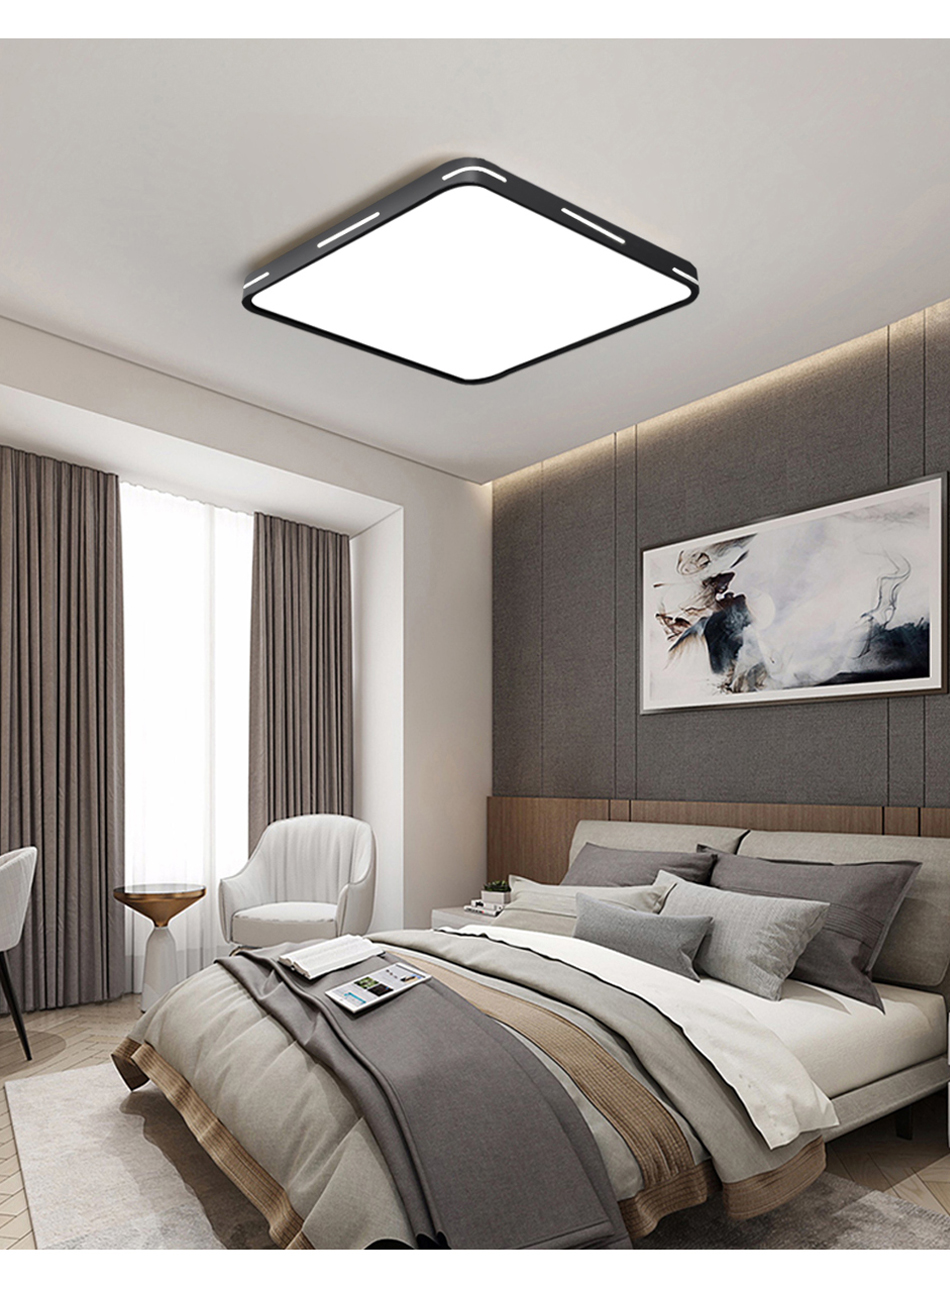 HTB1 dcTXQT2gK0jSZFkq6AIQFXan Modern LED Ceiling Light Lamp Lighting Fixture Surface Mount Flush Remote Control Dimmable 18W 48W Living Room Bedroom Balcony